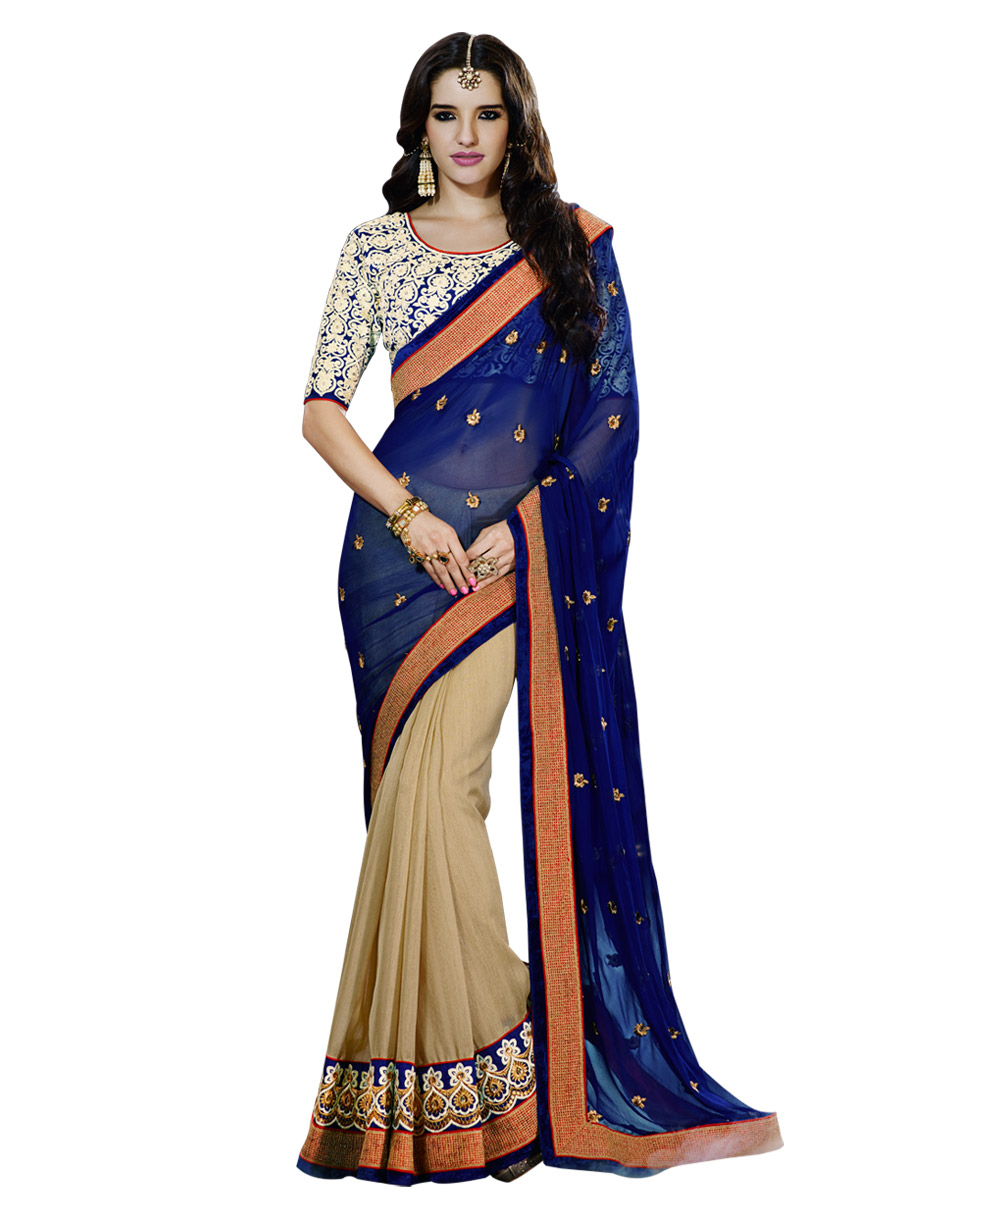 Zoom Designer Blouse Pattern Lace Royal Blue Saree: E2kart.com